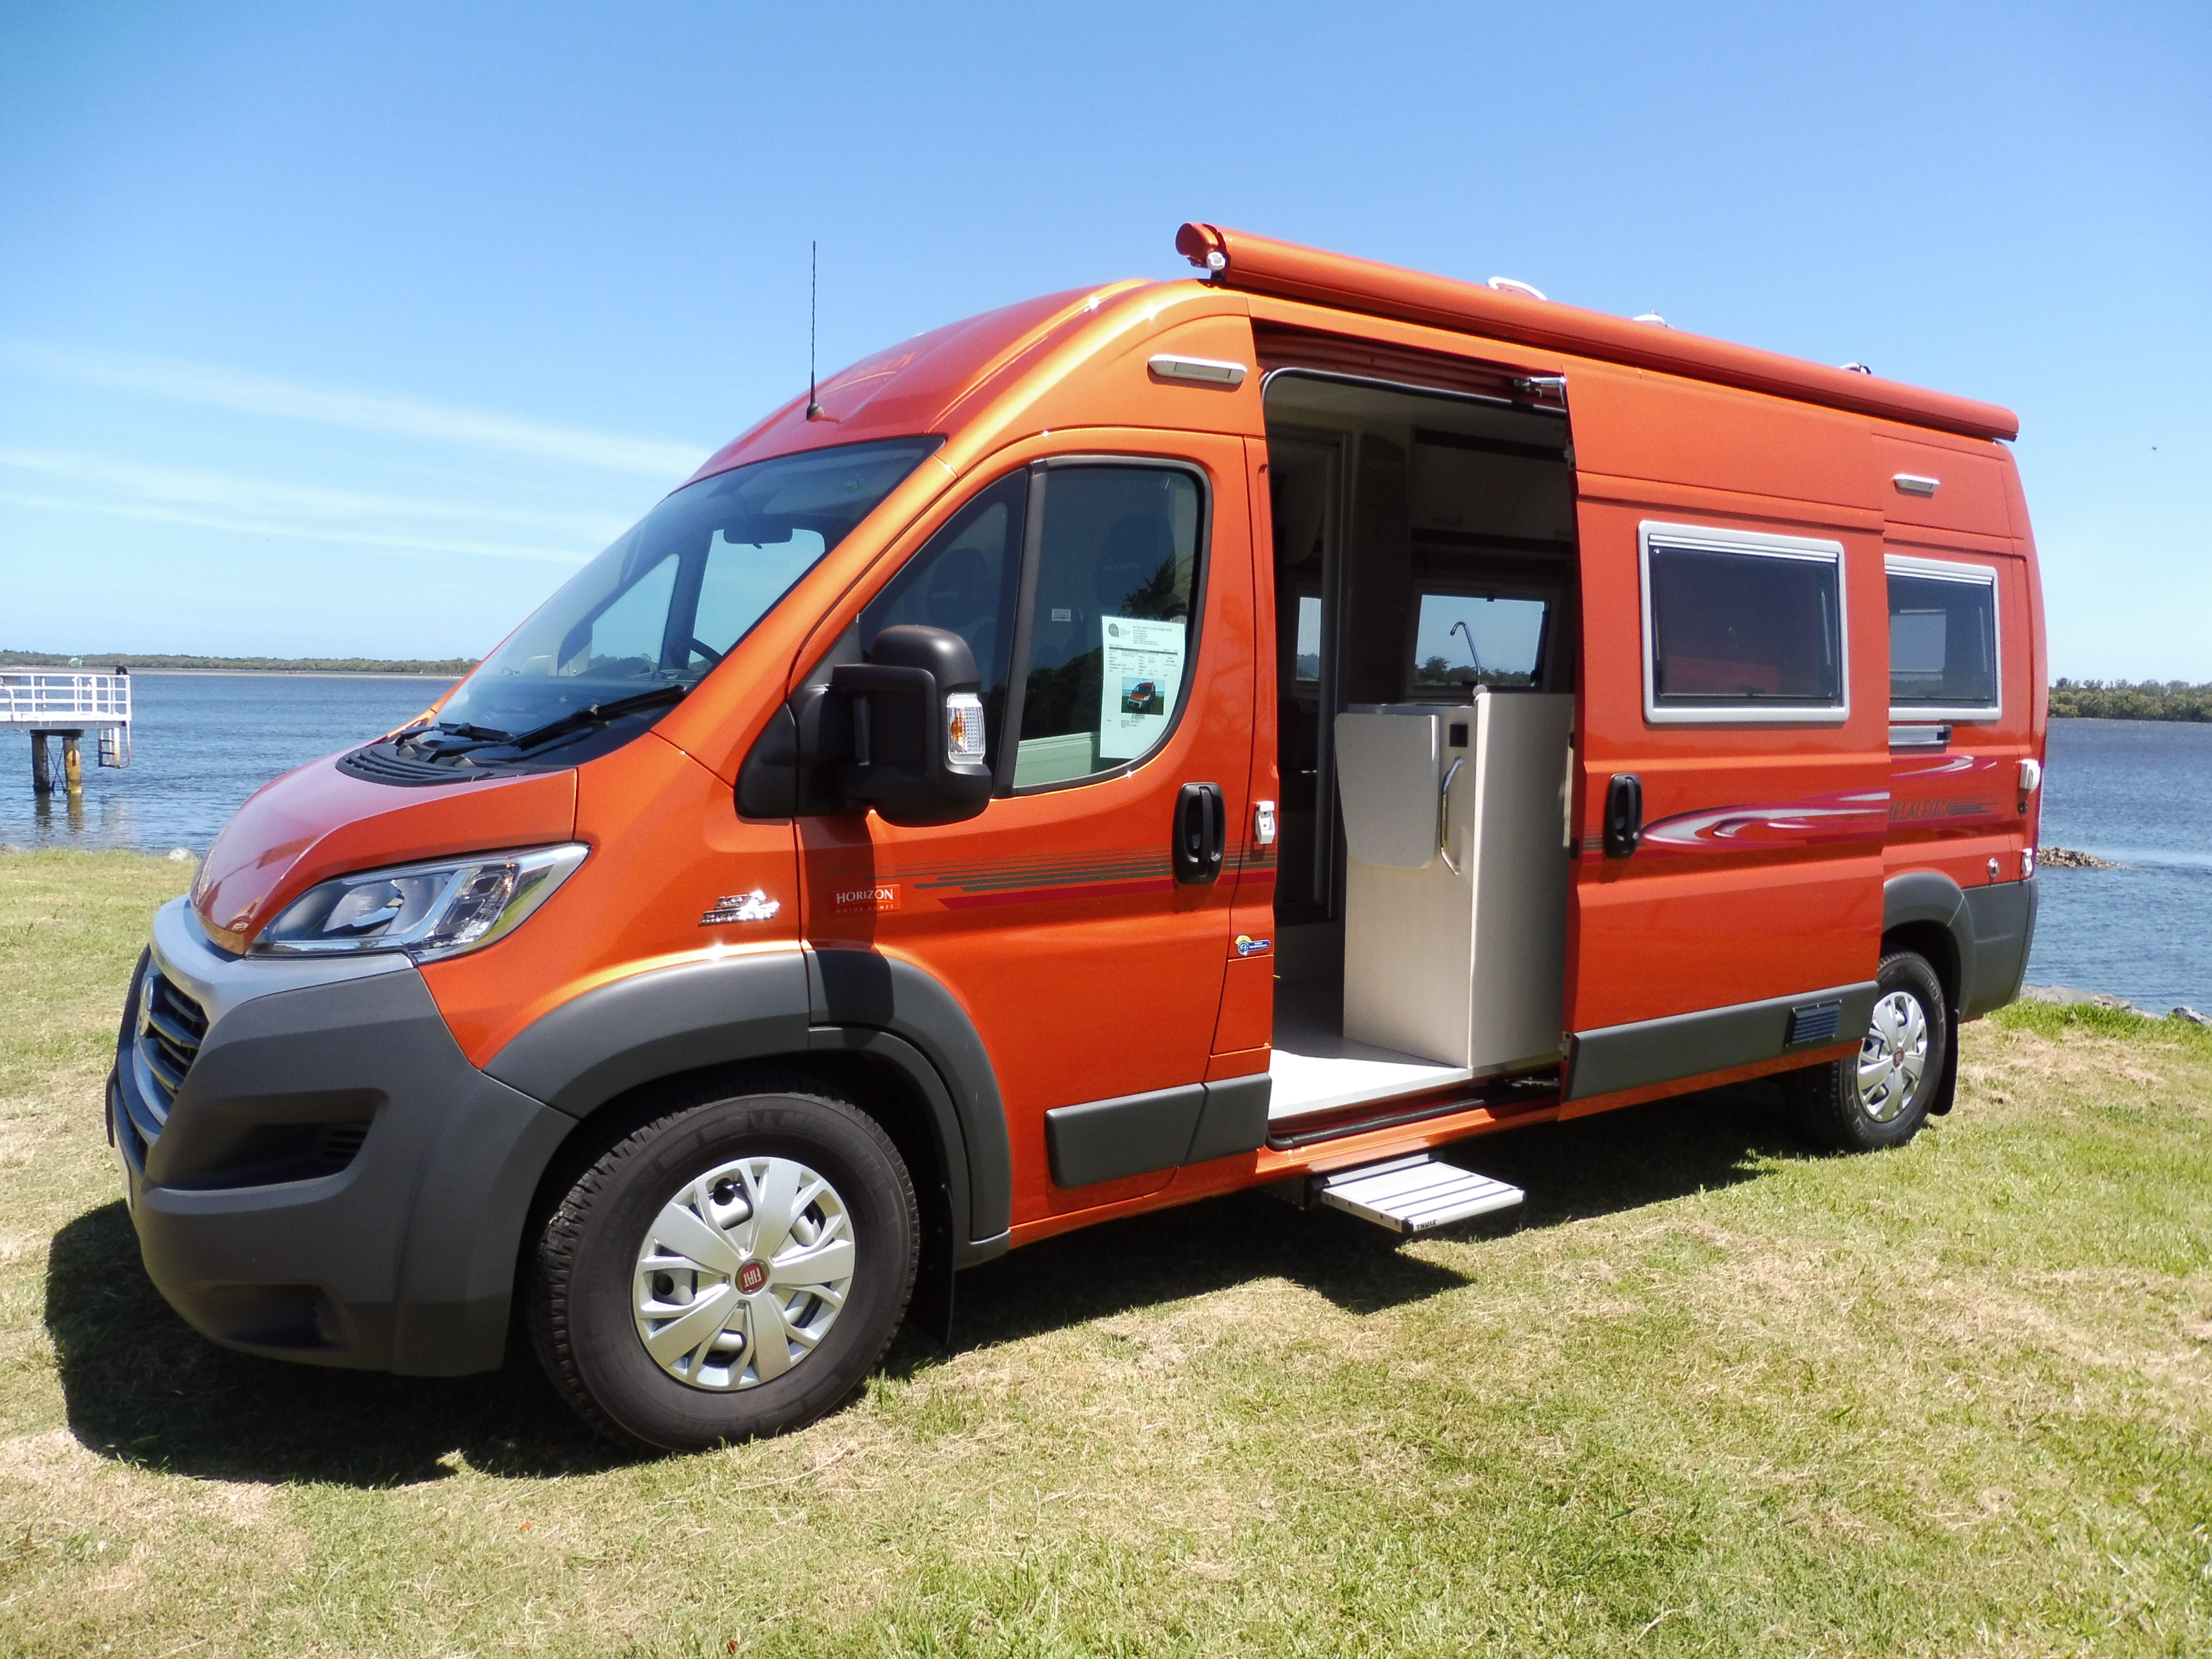 horizon melaleuca motorhome fiat ducato lwb stock no 7829 ballina campervans motorhomes. Black Bedroom Furniture Sets. Home Design Ideas